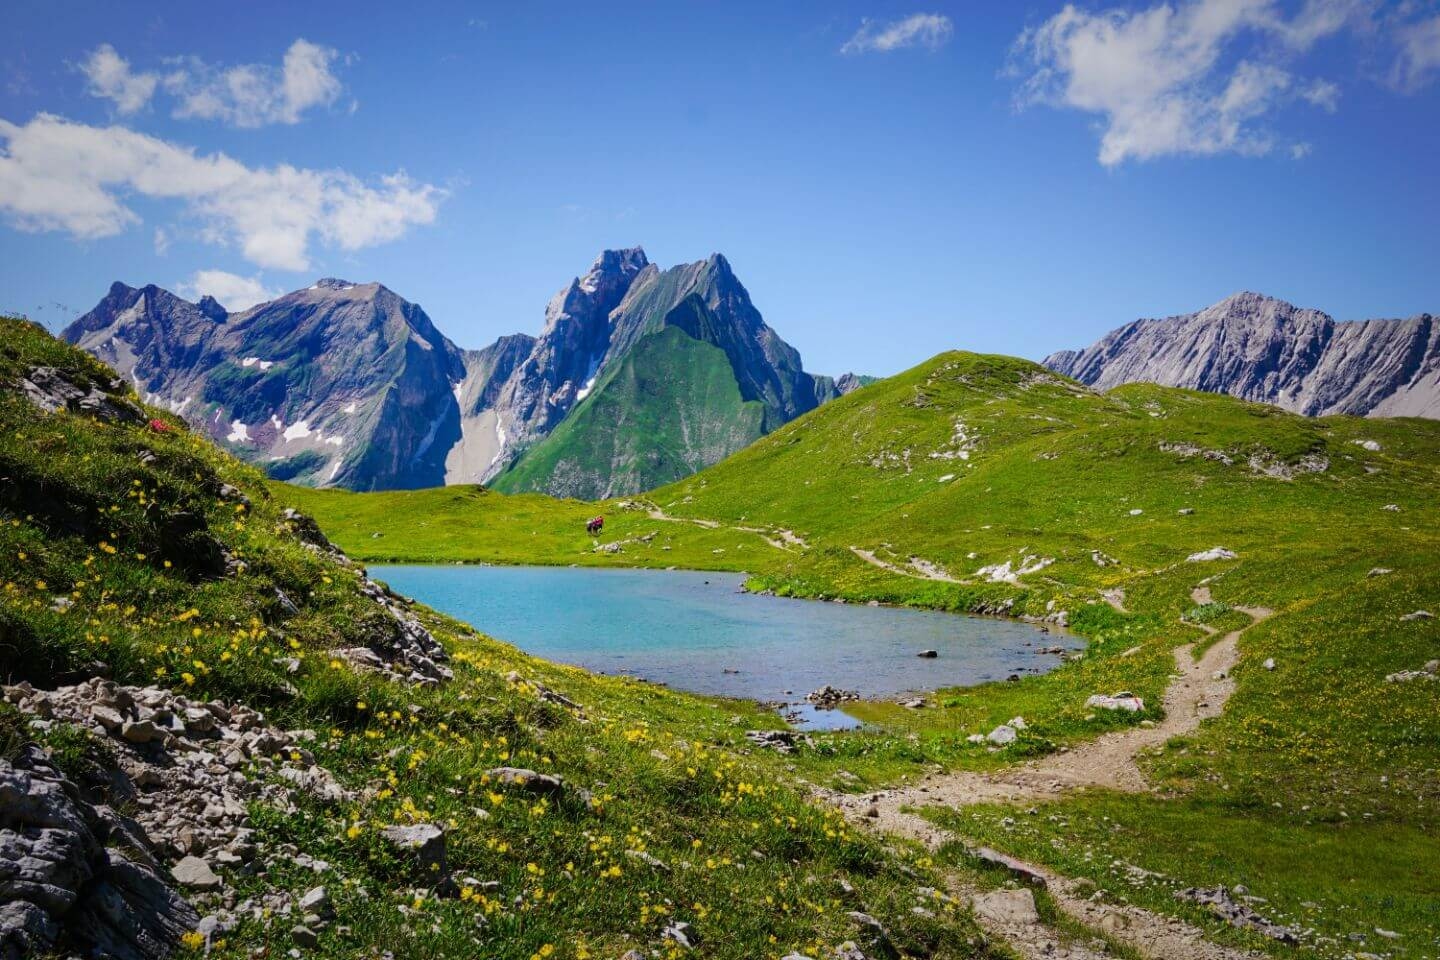 Lechtal Alps, Austria - Where to Stay in Austria in Summer